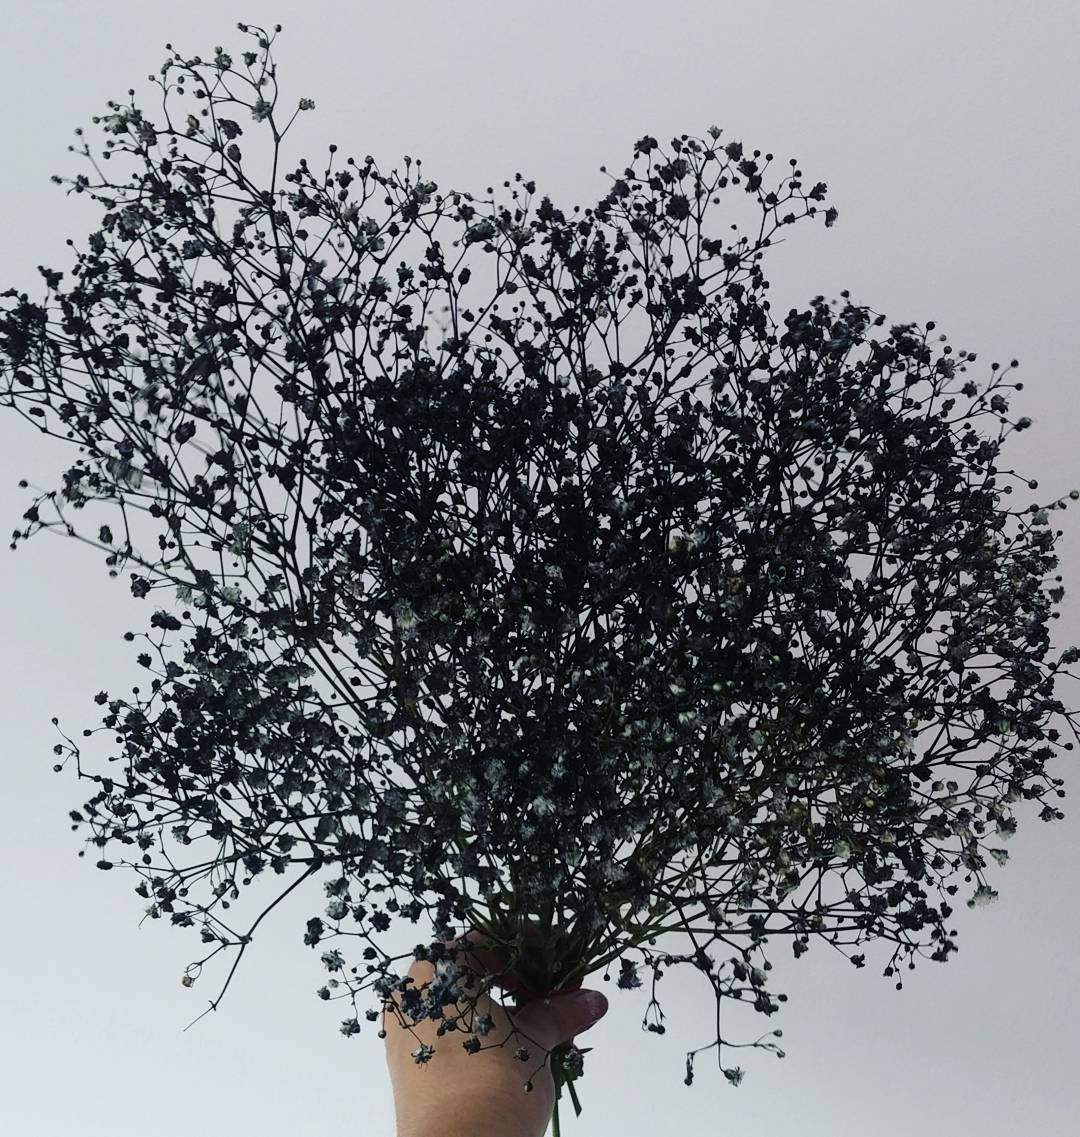 Hipmer On Instagram How About Some Cool Black Sprayed Dried Baby S Breath Gypsophila Trial 1 Drying Dyed Babys Breath Flowers Dyed Flowers Amazing Flowers